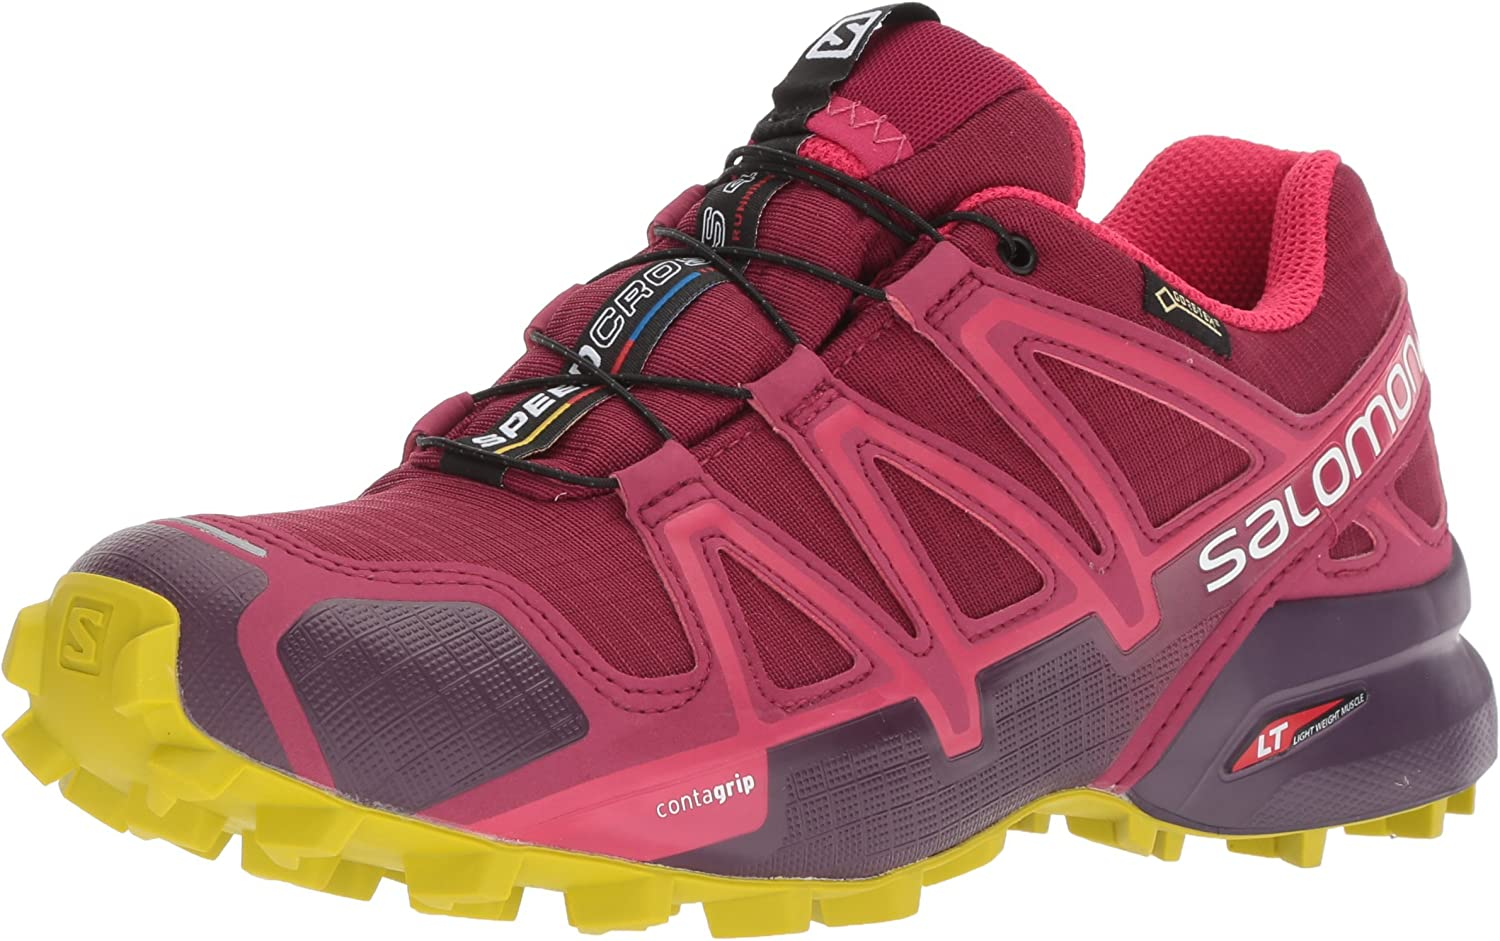 Salomon Speedcross 4 GTX, Zapatillas de Trail Running para Mujer, Rojo (Beet Red/Potent Violet/Citronelle), 41 1/3 EU: Amazon.es: Zapatos y complementos